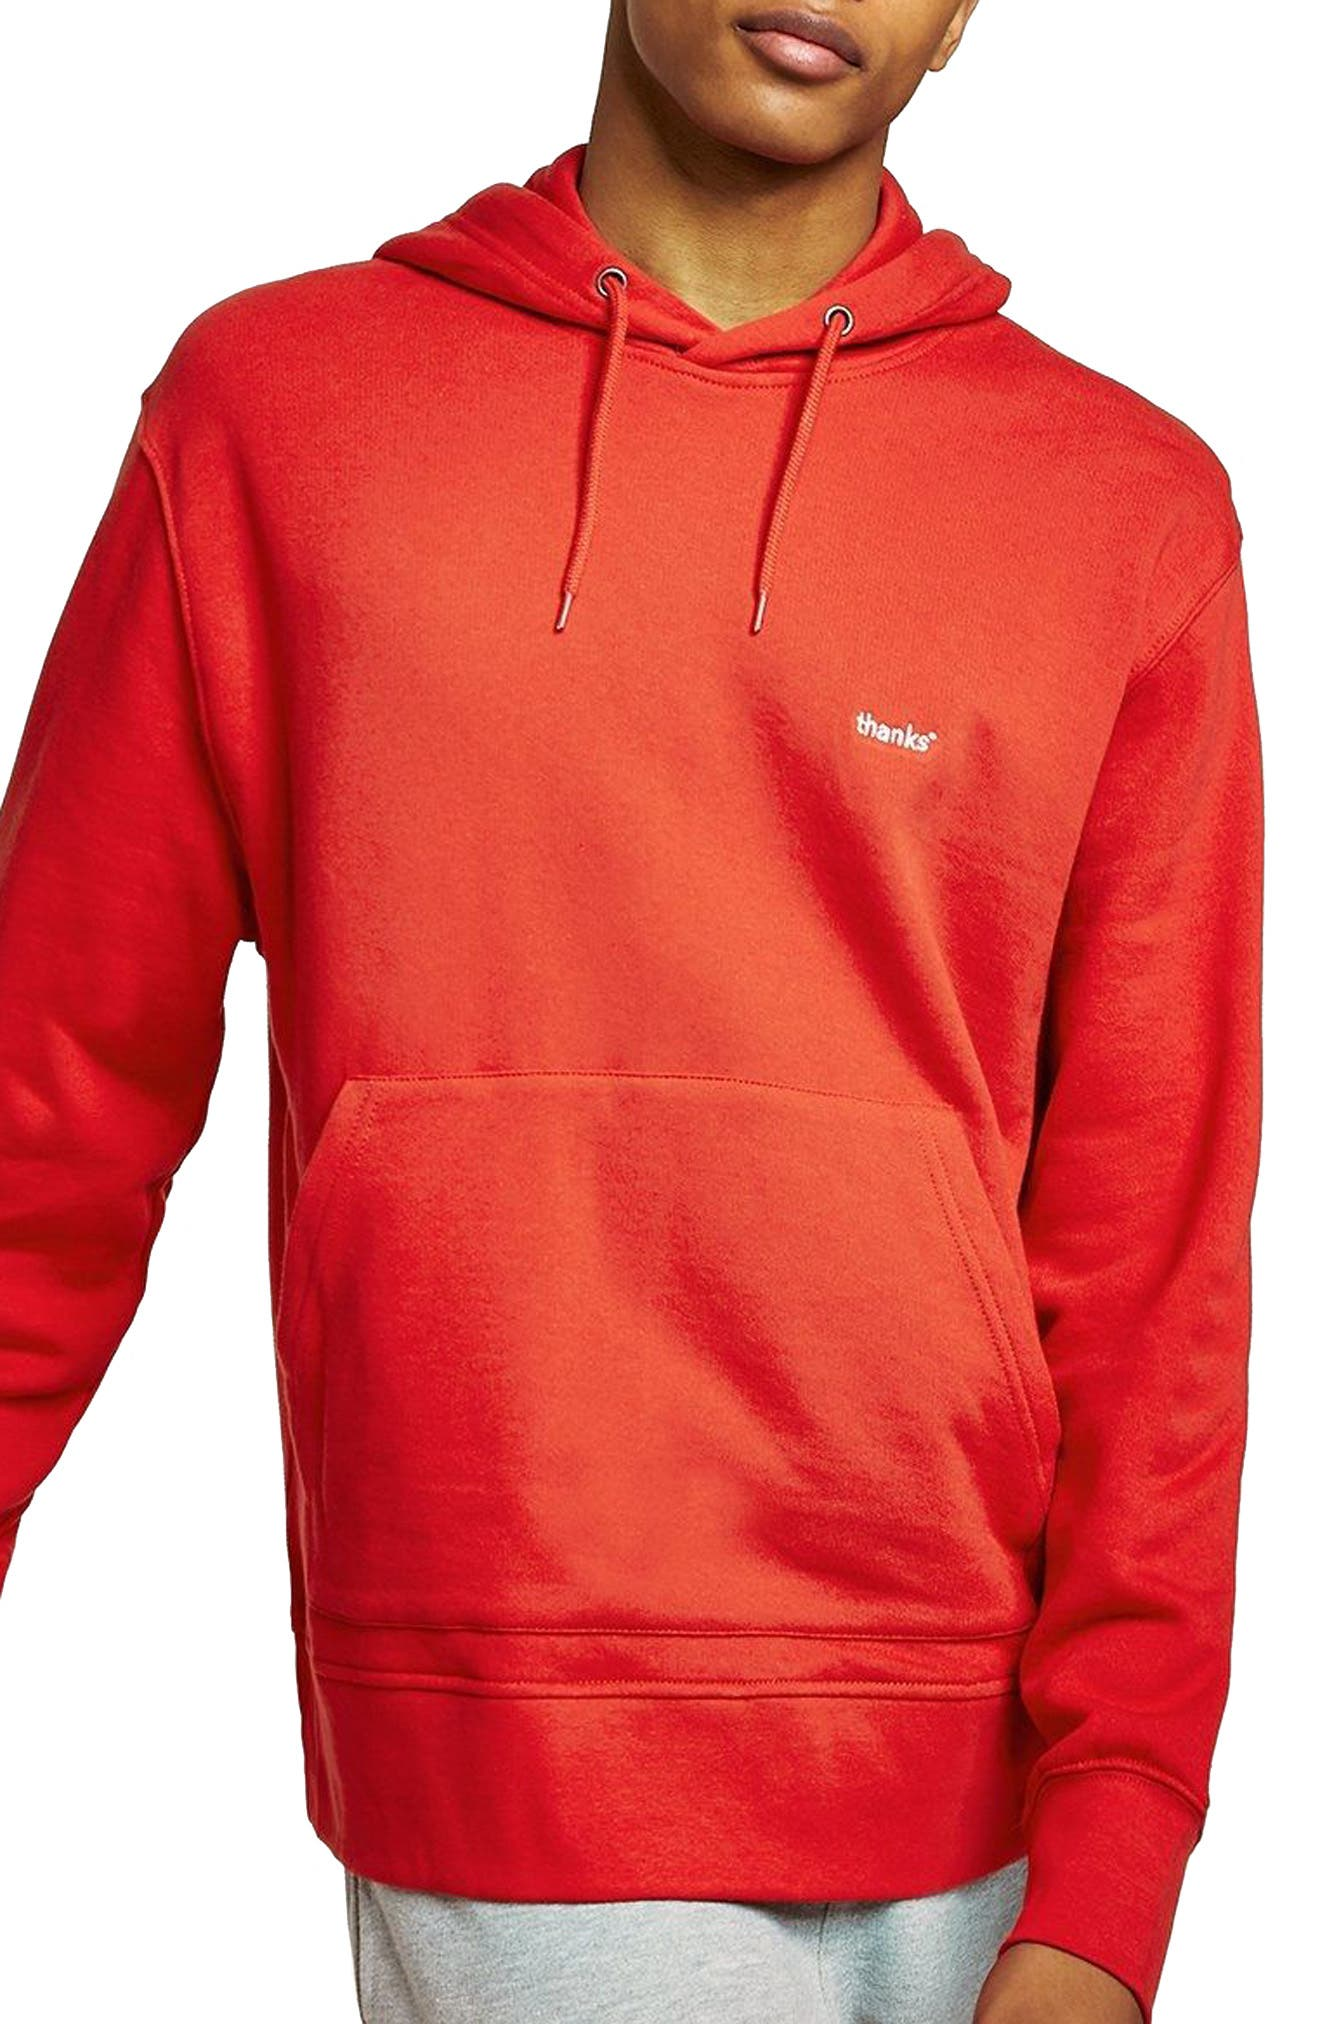 Classic Fit Tristan Thanks Embroidered Hoodie,                             Main thumbnail 1, color,                             Red Multi